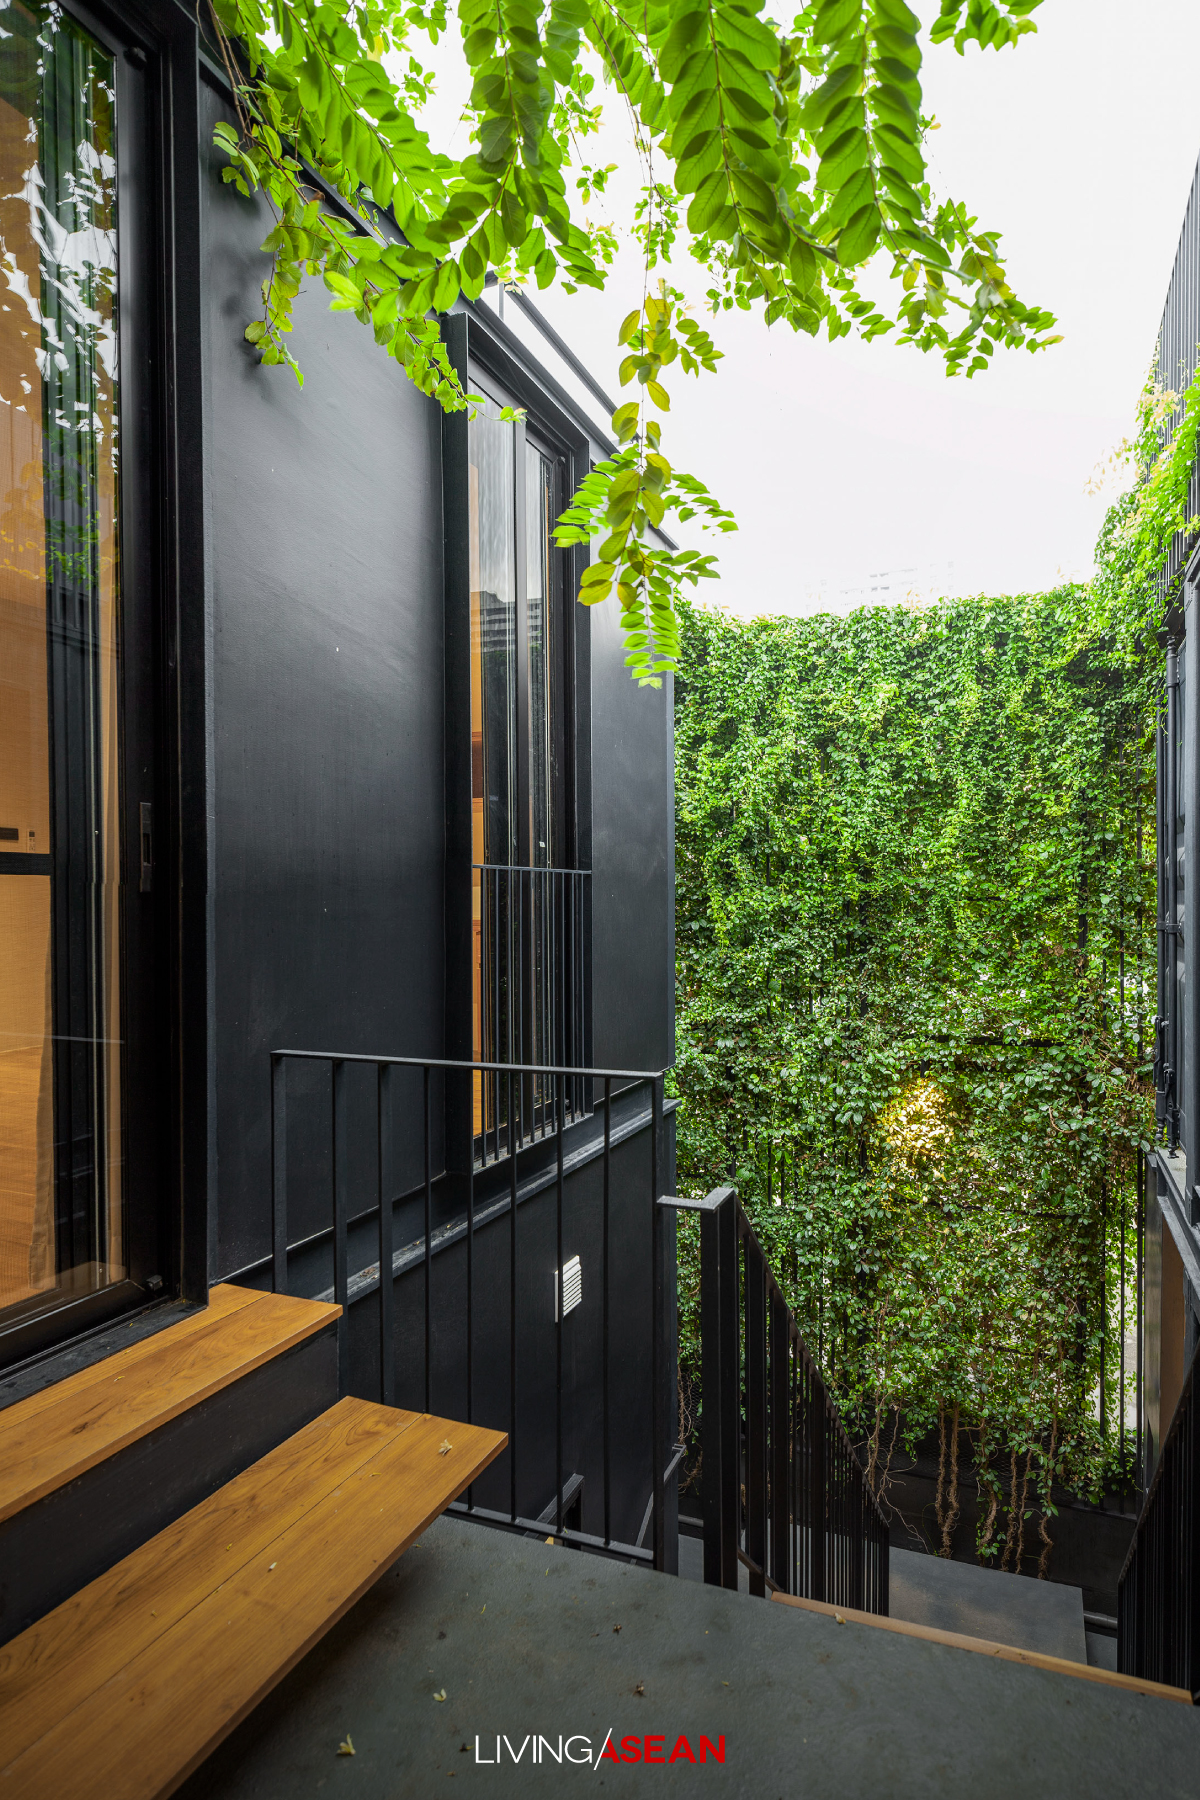 Container Home Amid an Enchanted Forest Garden